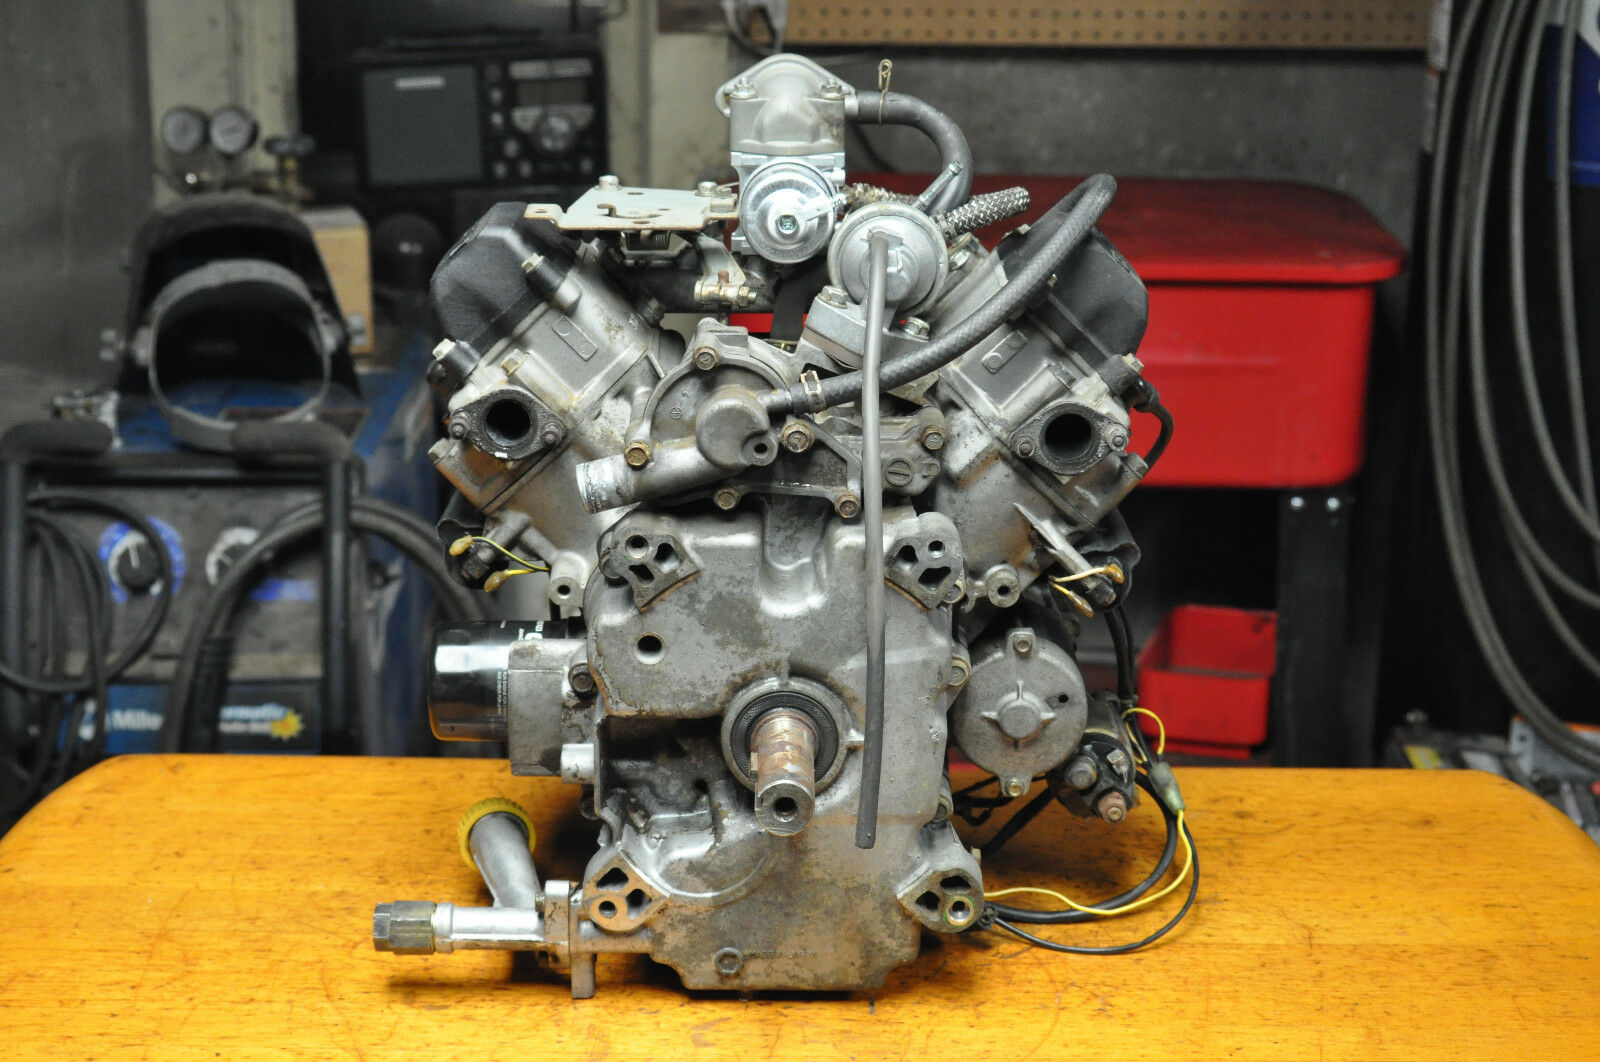 John Deere 345 Complete Engine Kawasaki Fd590v Bs04 18hp 1 Of 9free Shipping See More